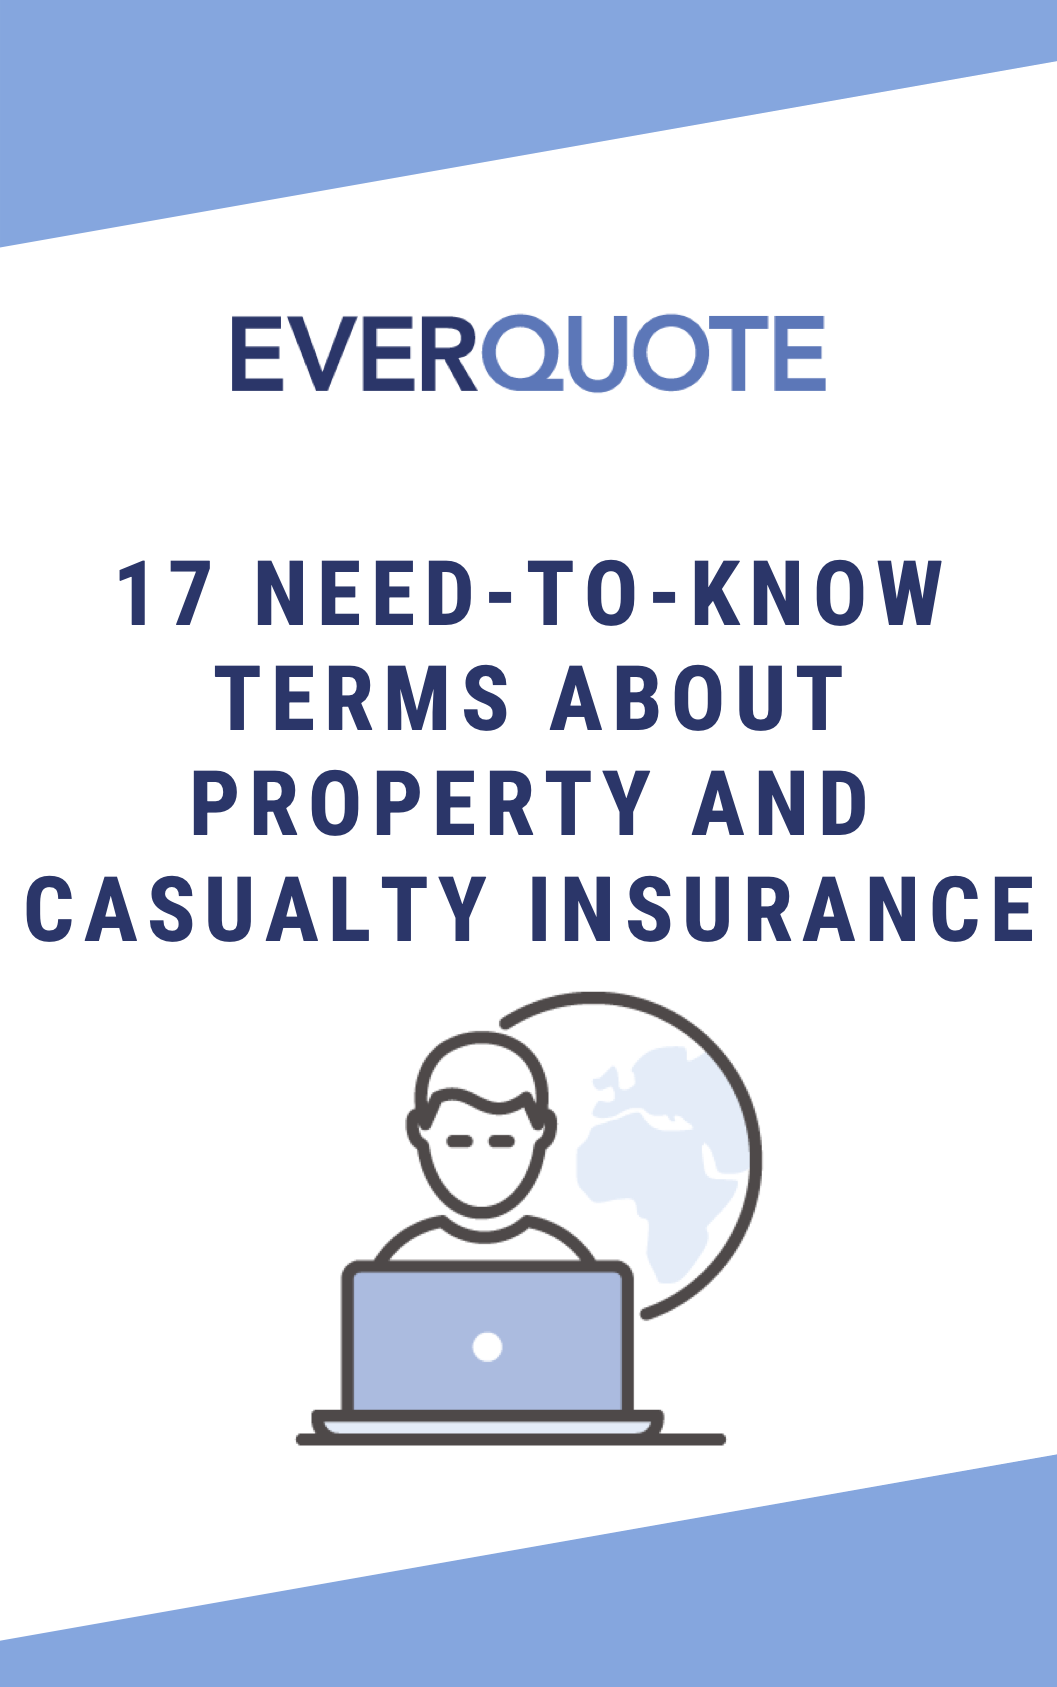 17 Need-to-Know Terms About P&C Insurance